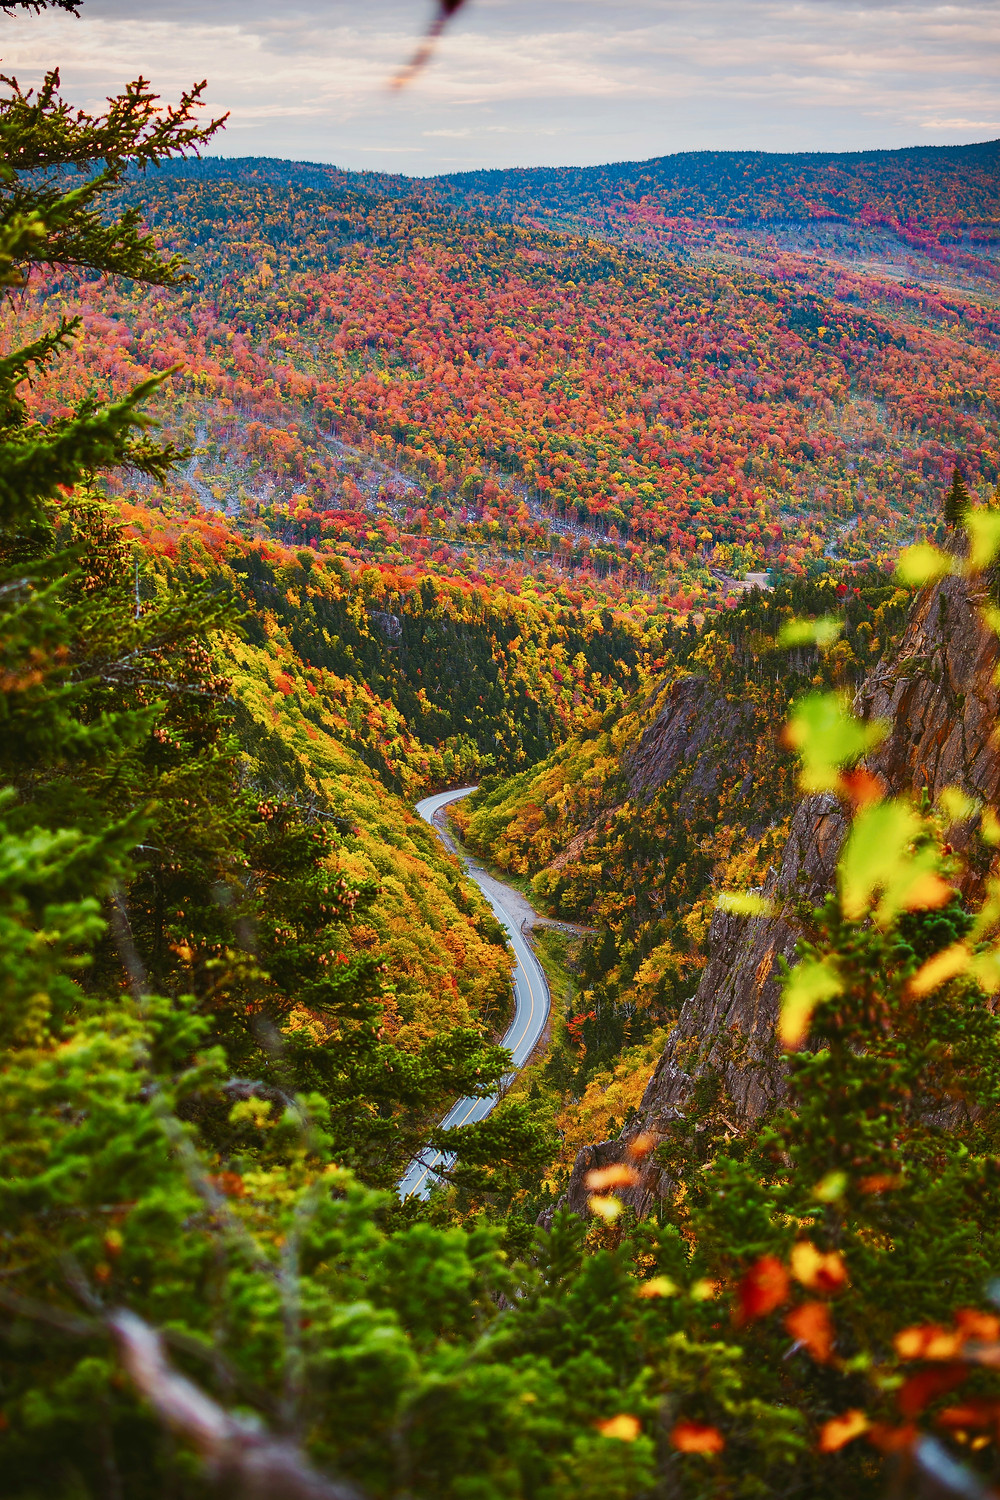 the road winding through Dixville Notch